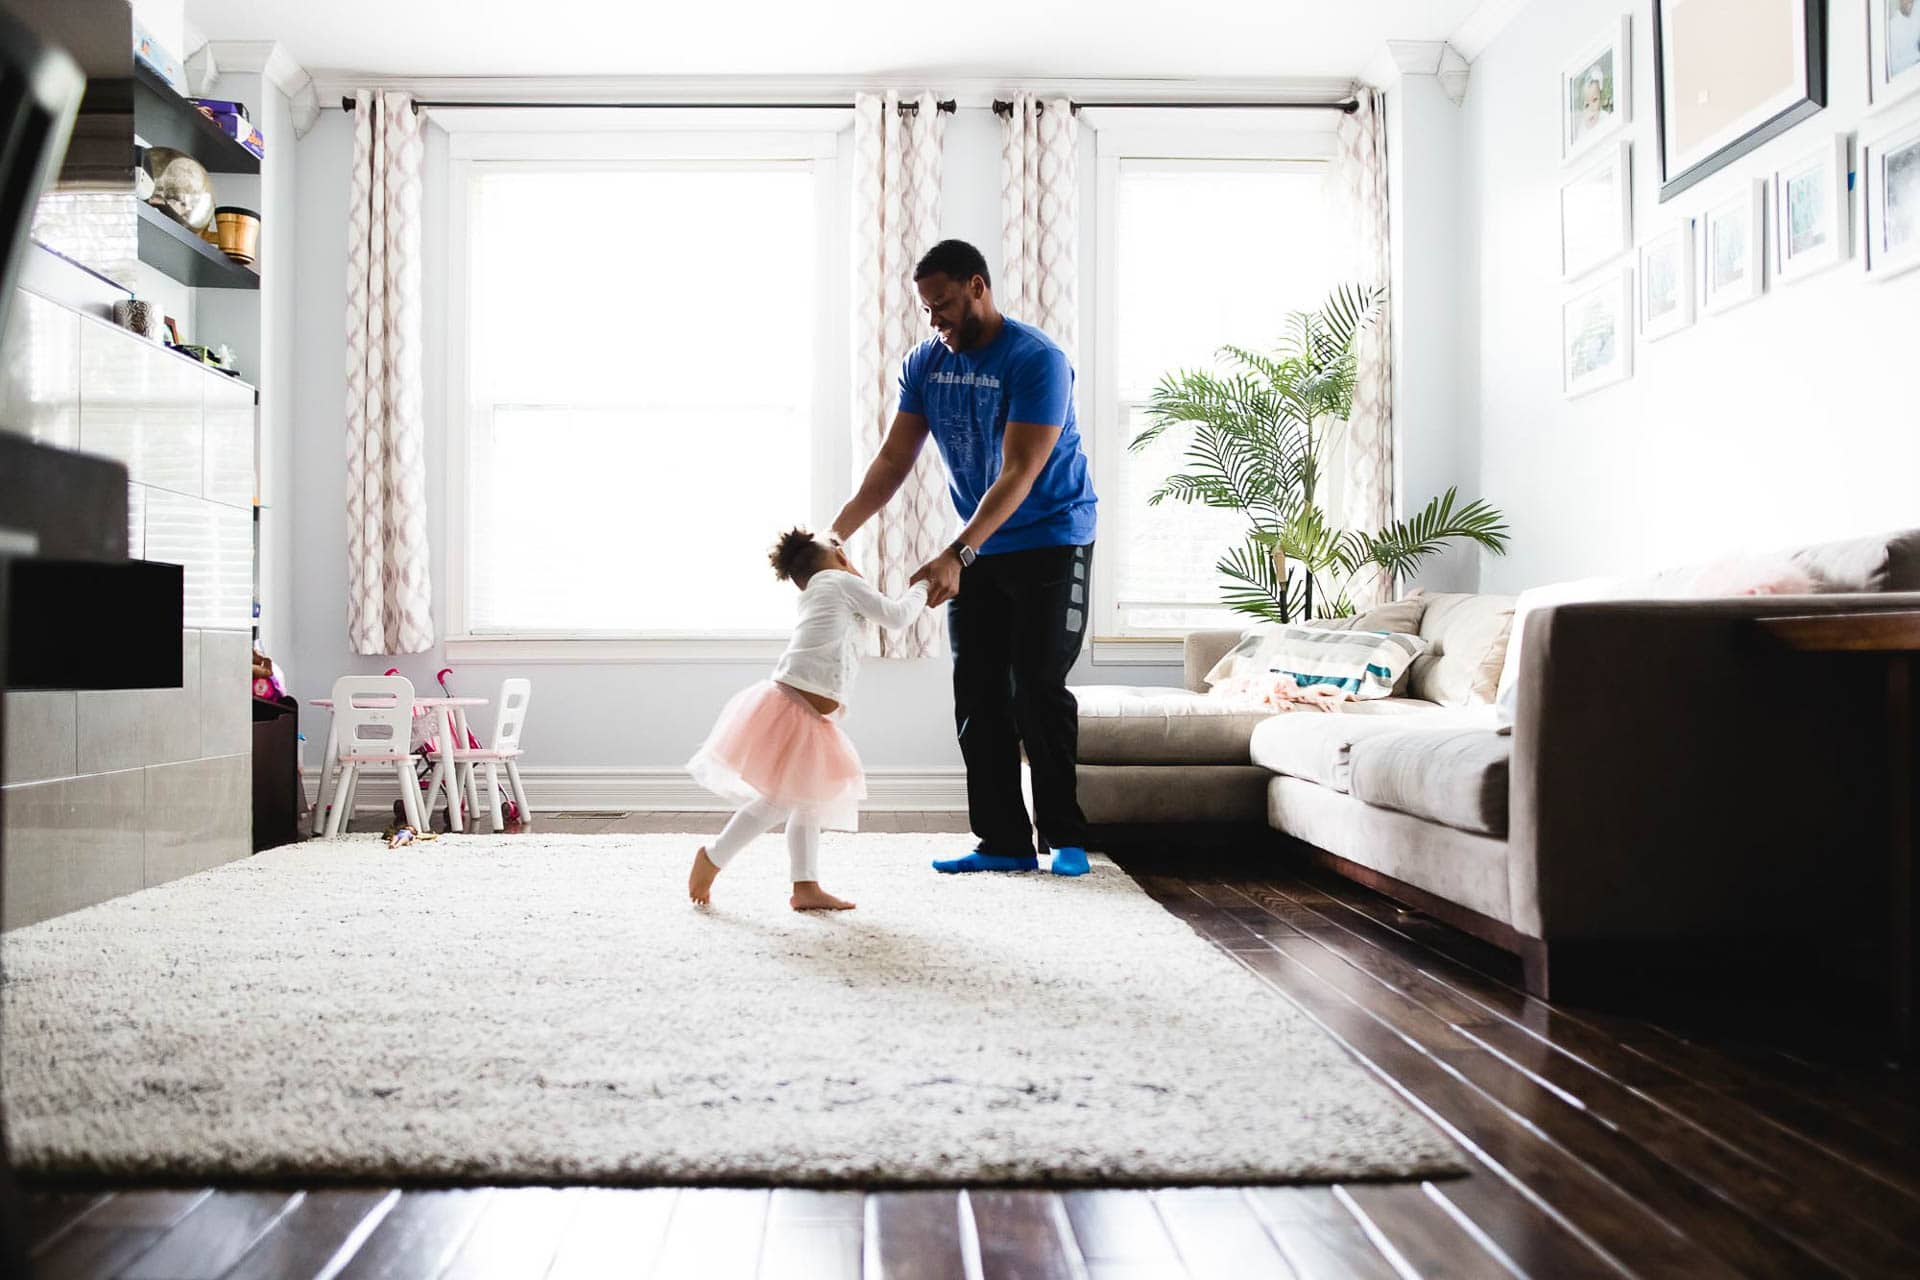 dad dances with toddler daughter in tutu in living room Old City Philadelphia Lucy Baber Photography